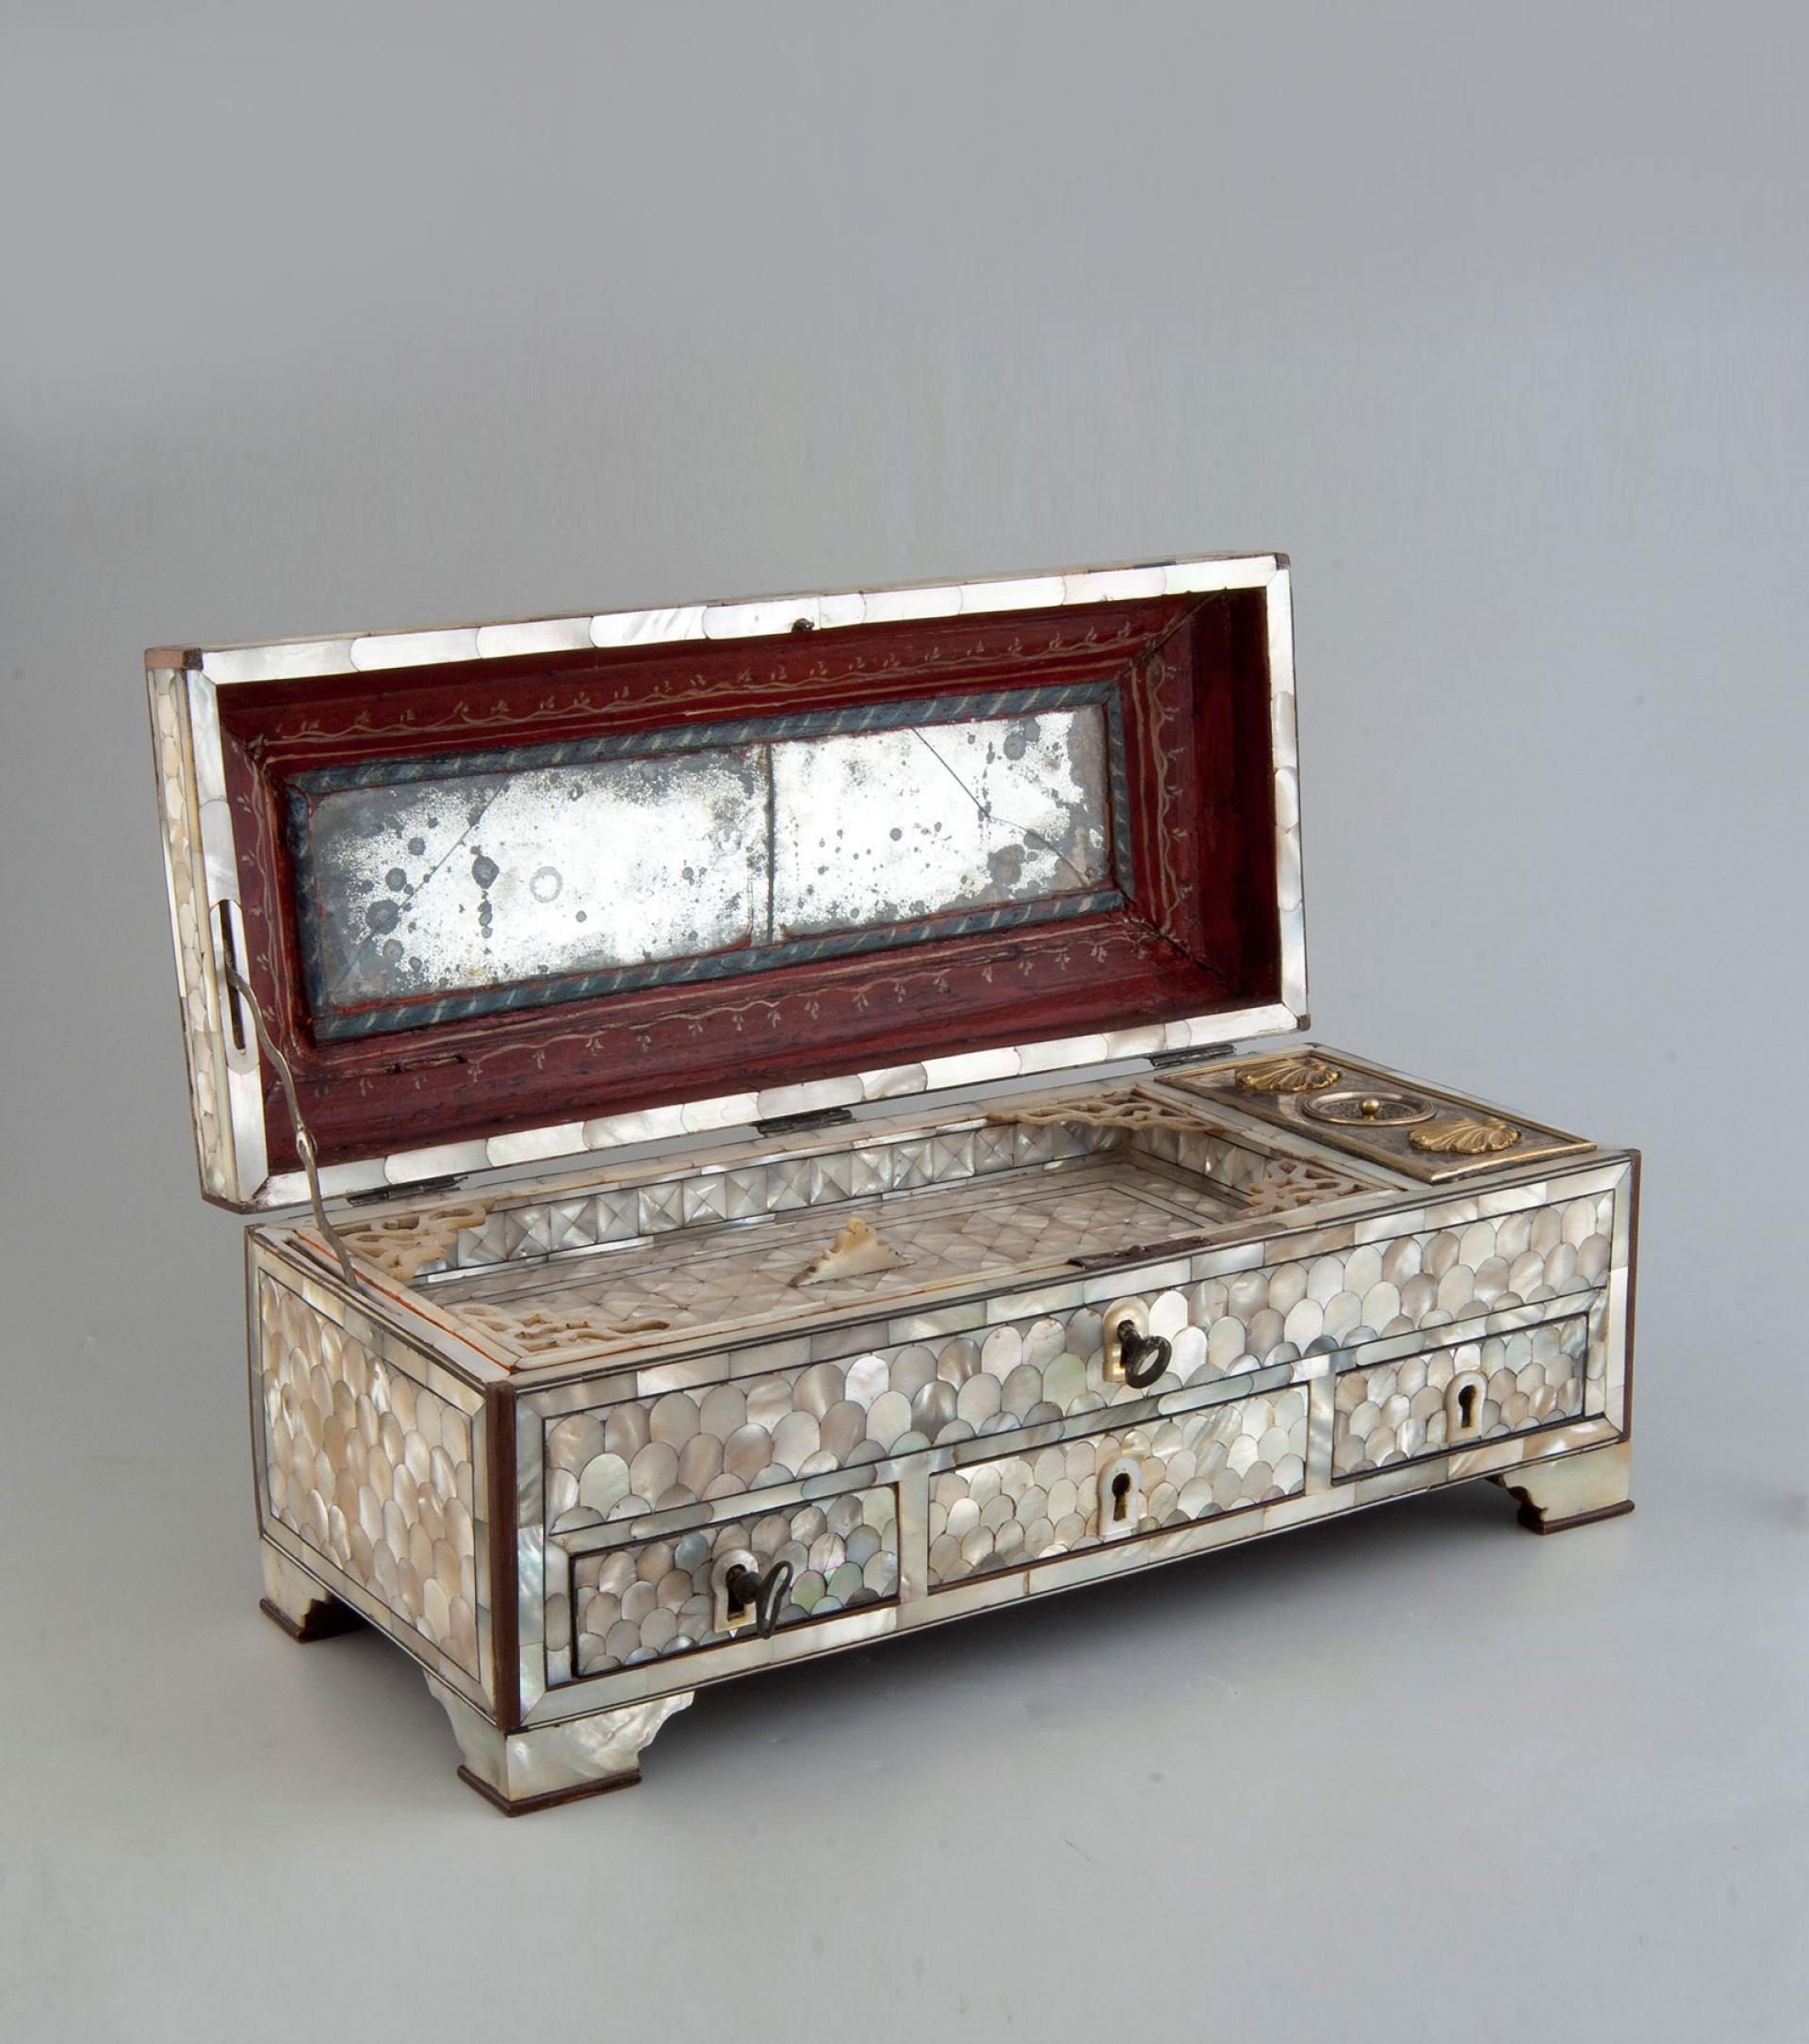 SHM14123 - Calligrapher's tool caseWood - mother of pearlOttoman, 18th century